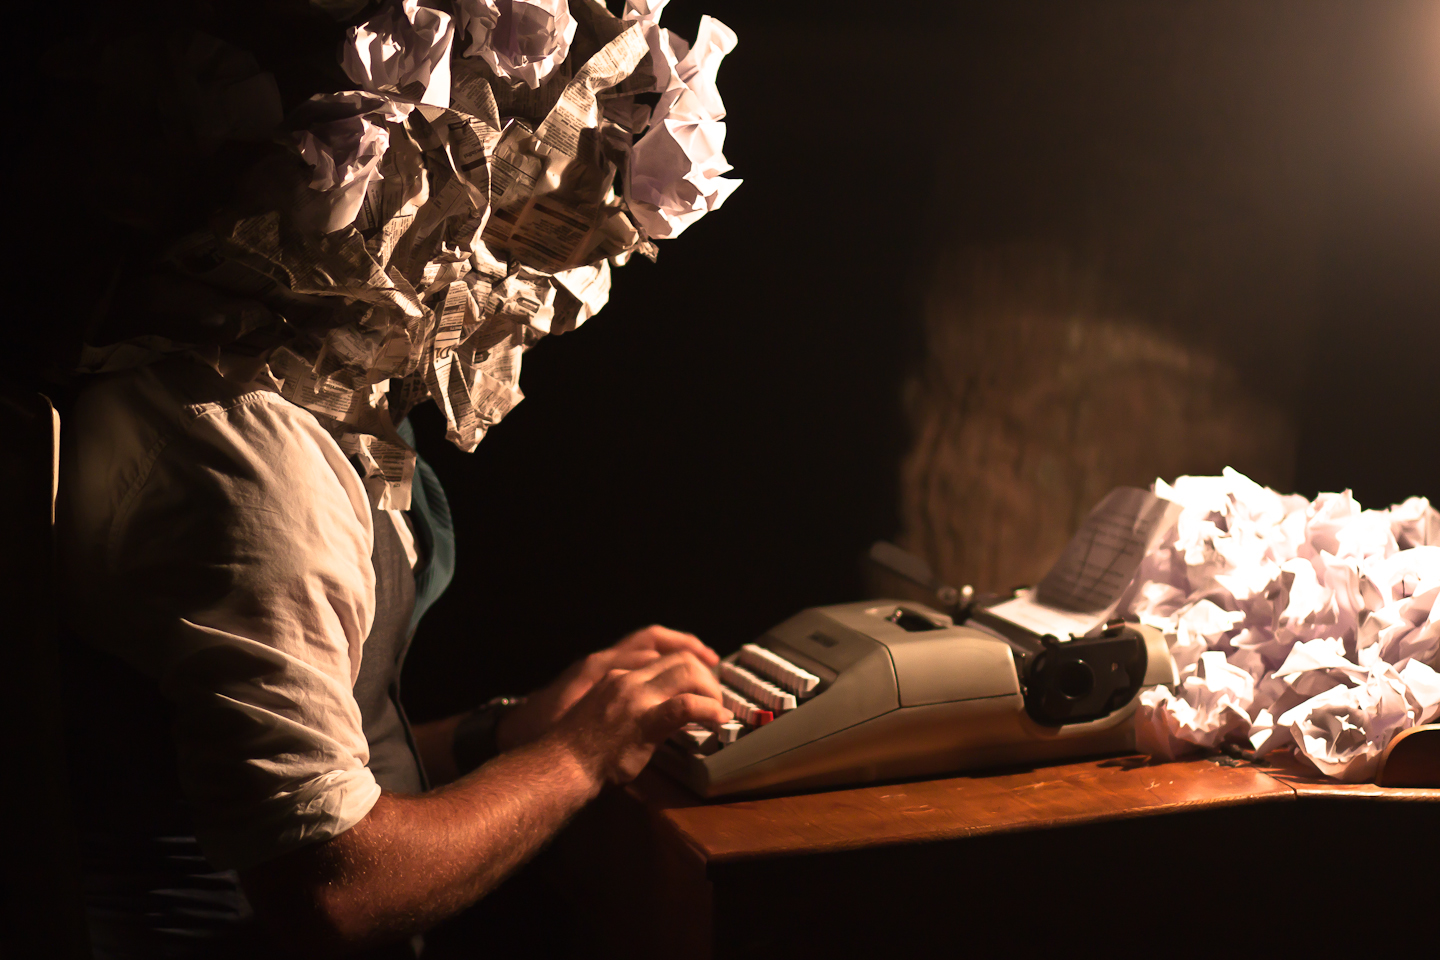 Typist with a crumpled paper head